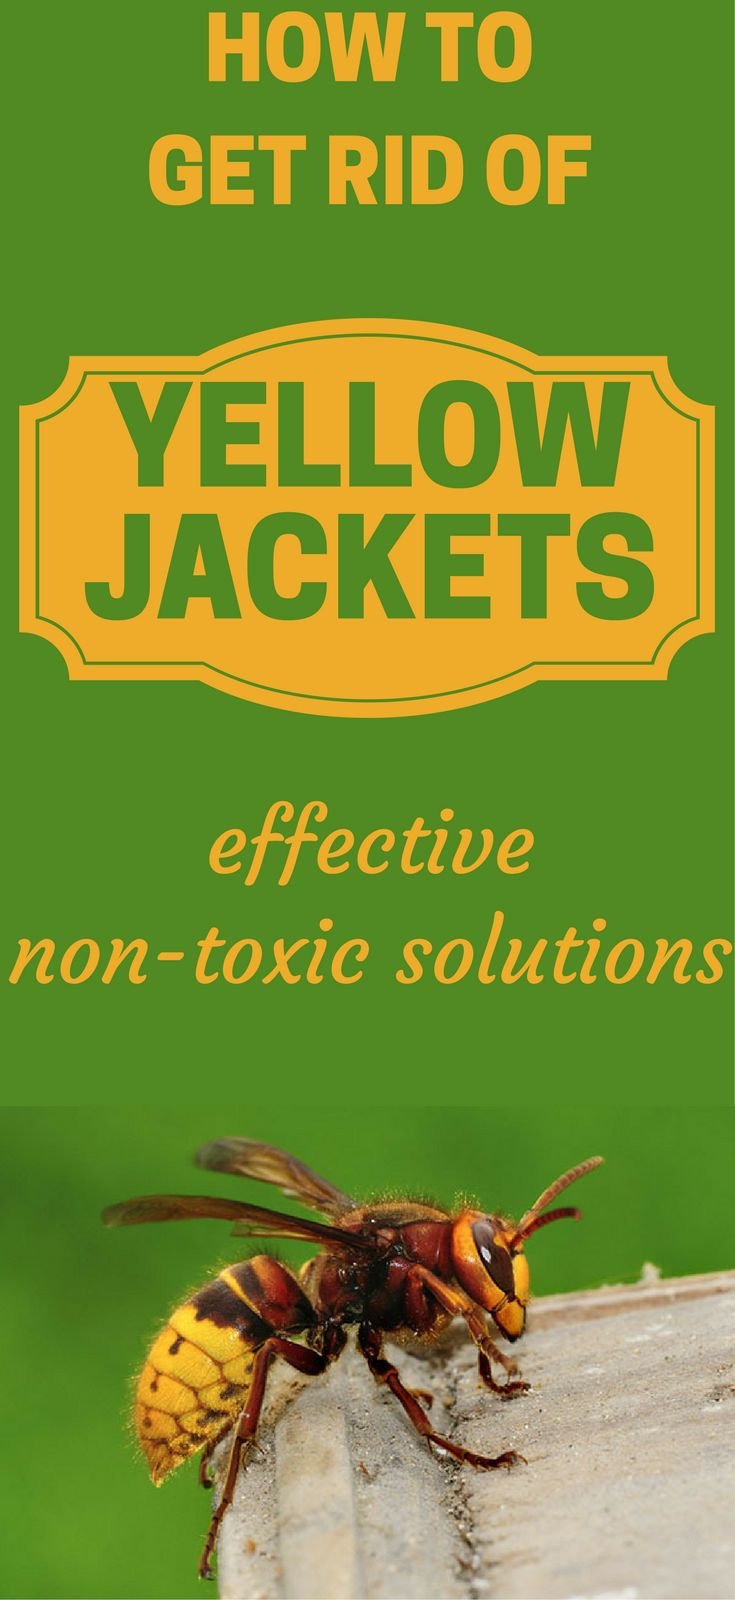 Yellow jackets in ground best way to kill - Best 25 Yellow Jacket Wasp Ideas On Pinterest Wasp Insect Wasp And Yellow Jackets